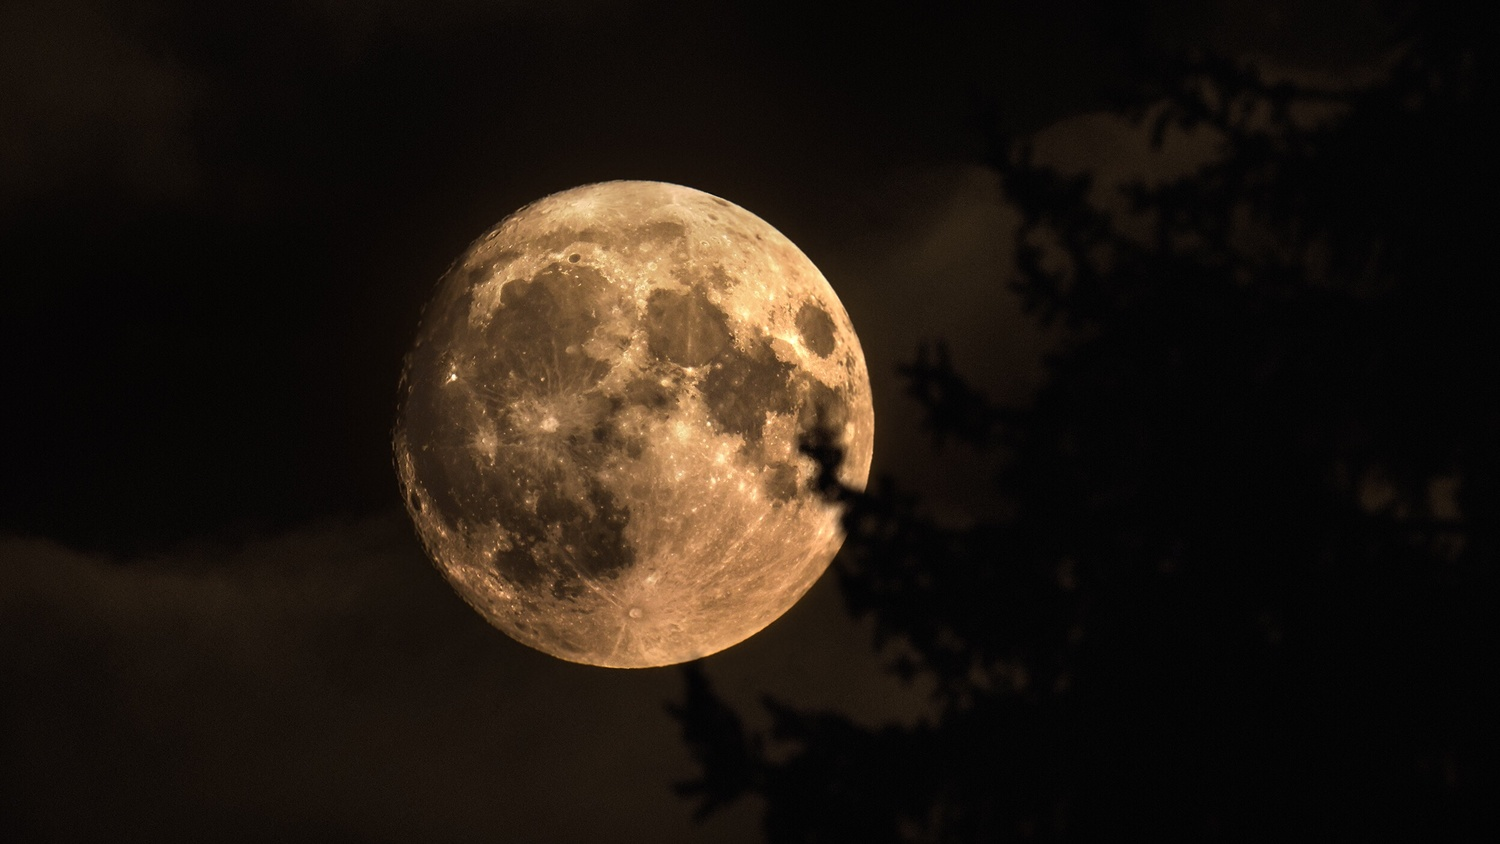 The Moon by Chris Klein